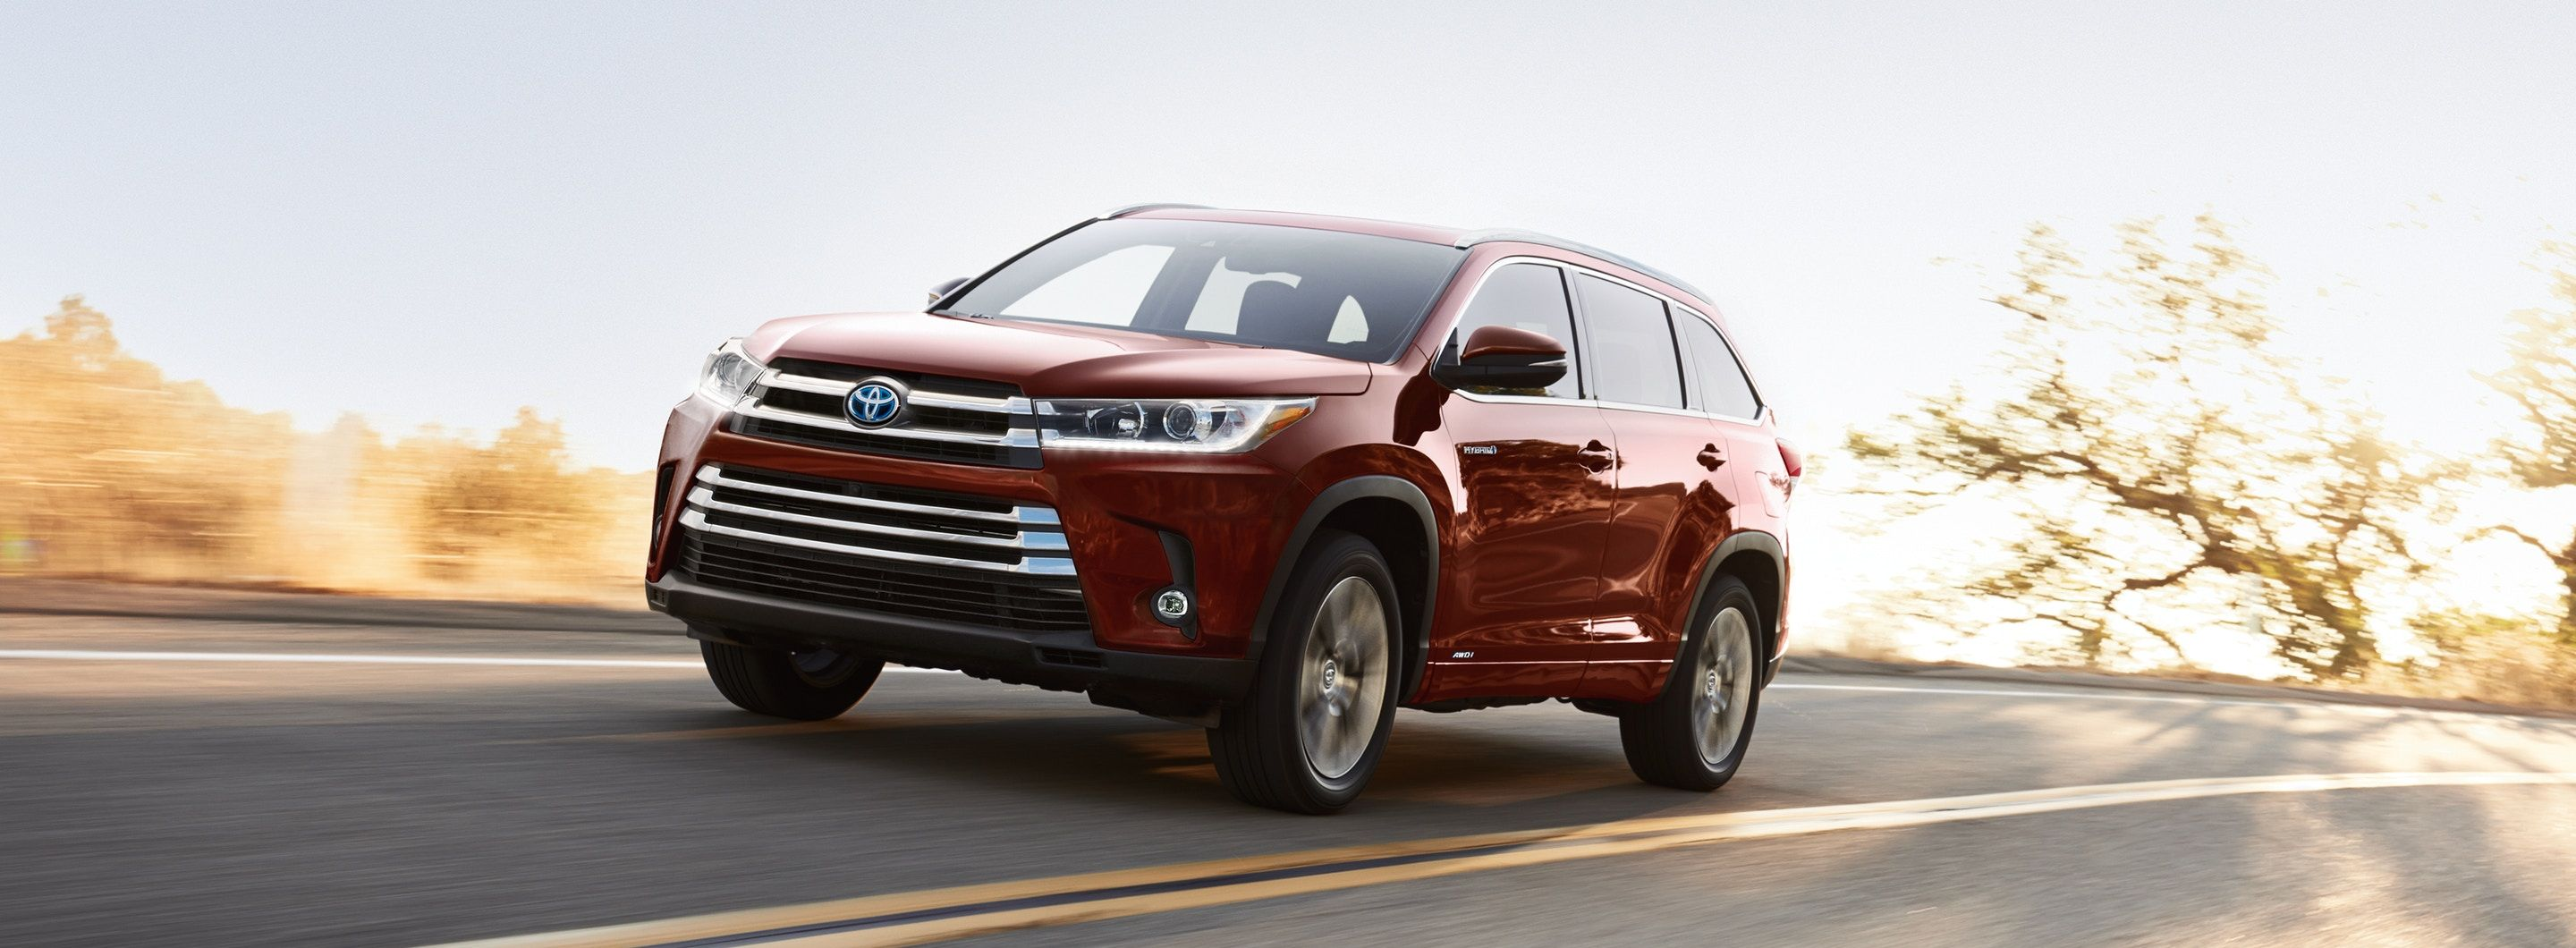 2019 Toyota Highlander Leasing near Loves Park, IL